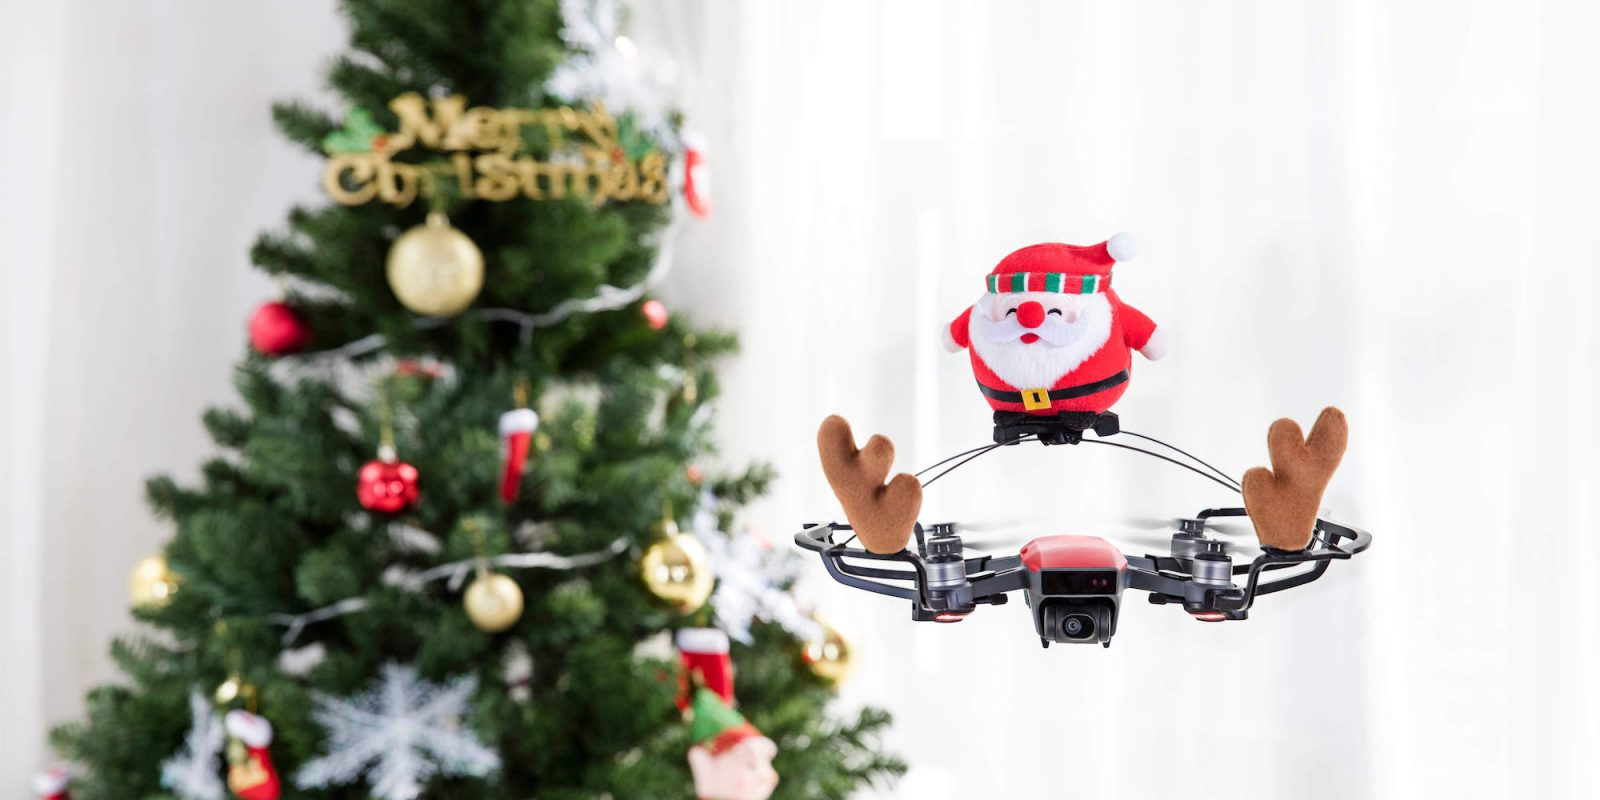 DJI announces Winter Holiday sale for upcoming Christmas shopping ...